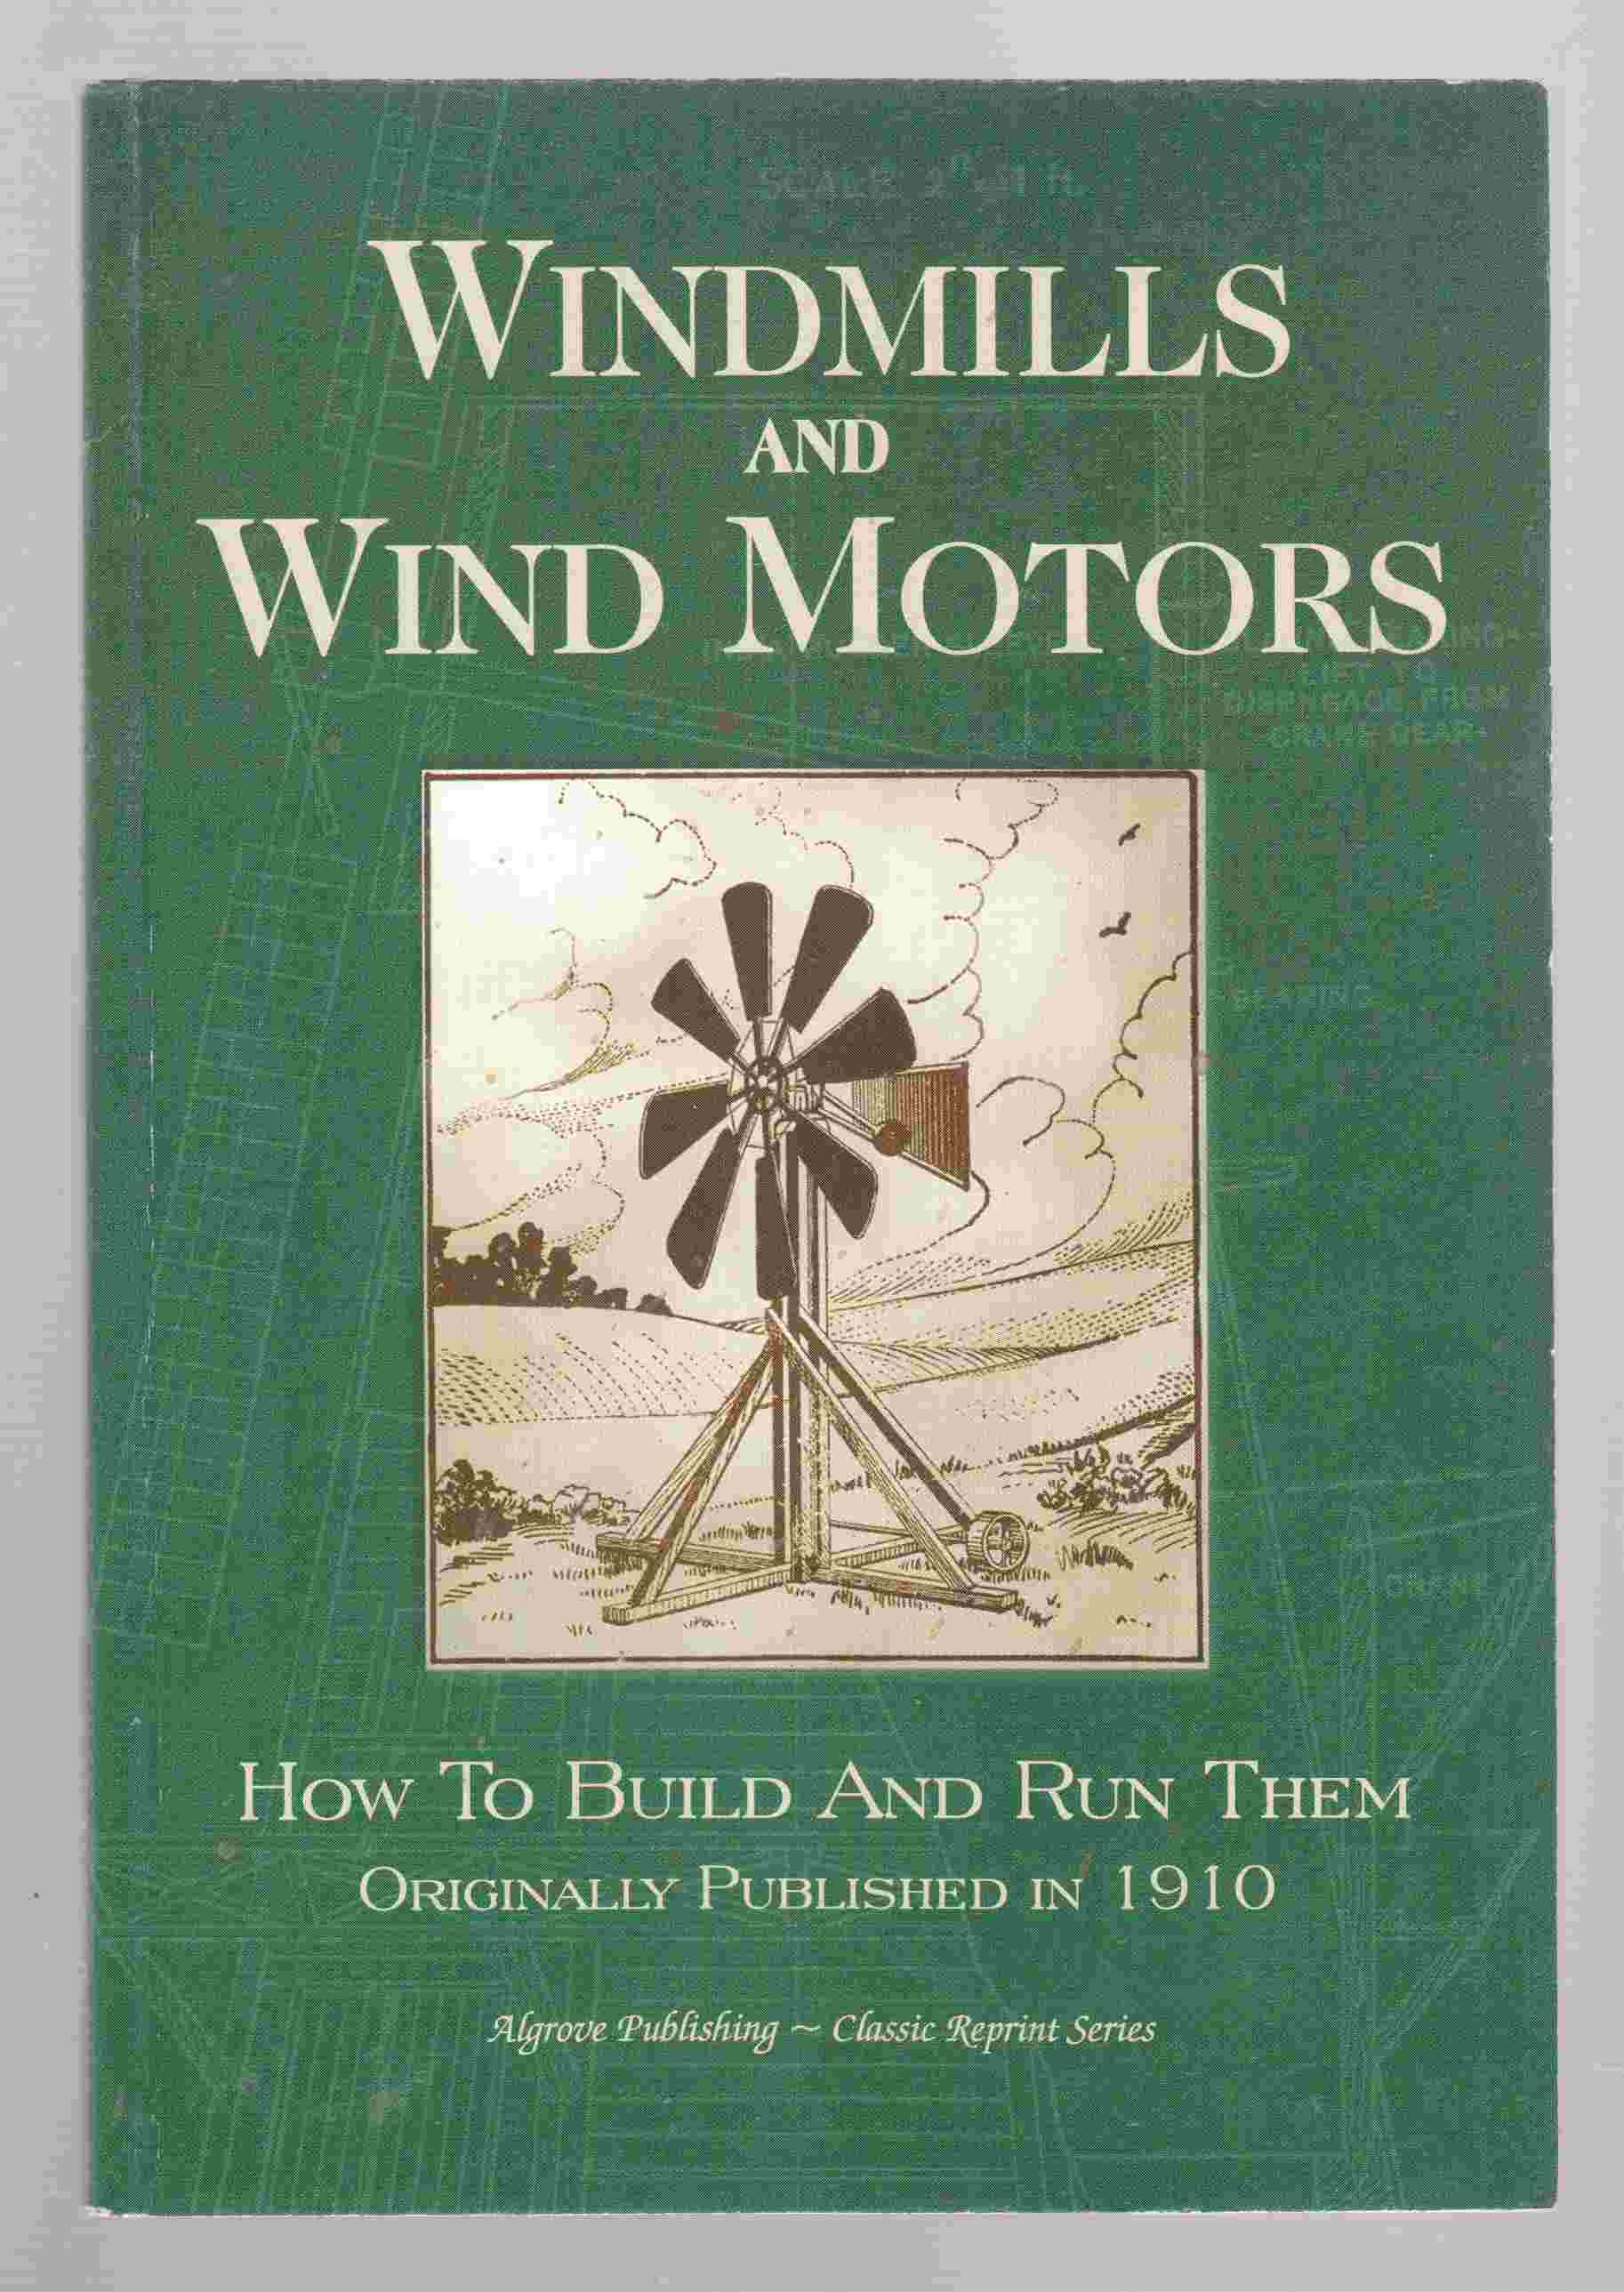 Image for Windmills and Wind Motors How to Build Them and Run Them